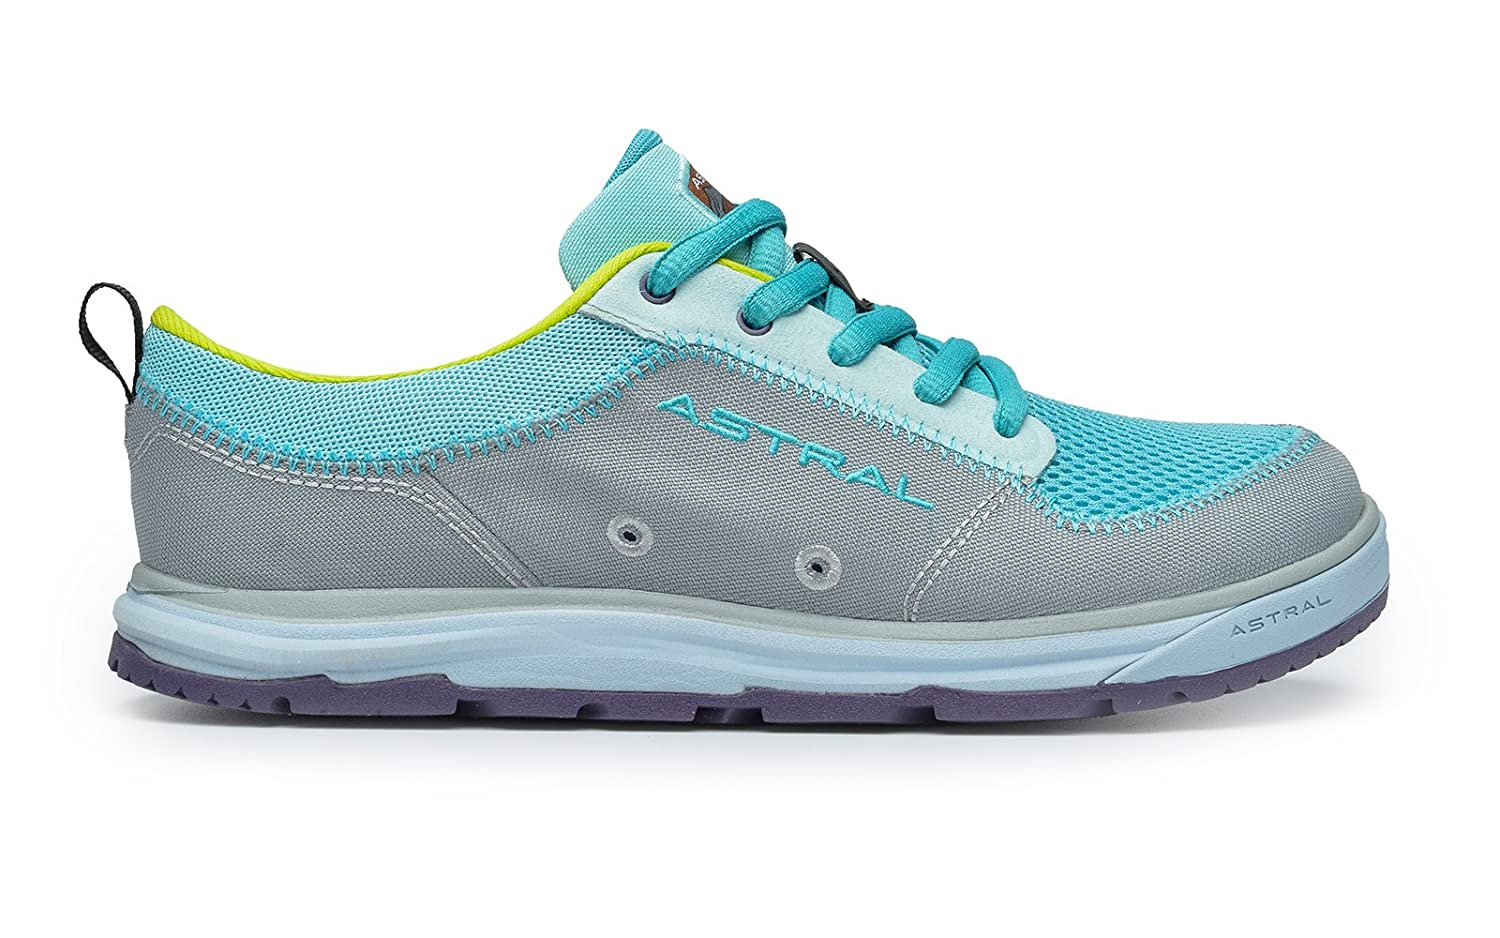 Astral Brewess 2.0 Women's Water Shoe B079C4KJP5 6.5|Turquoise/Gray